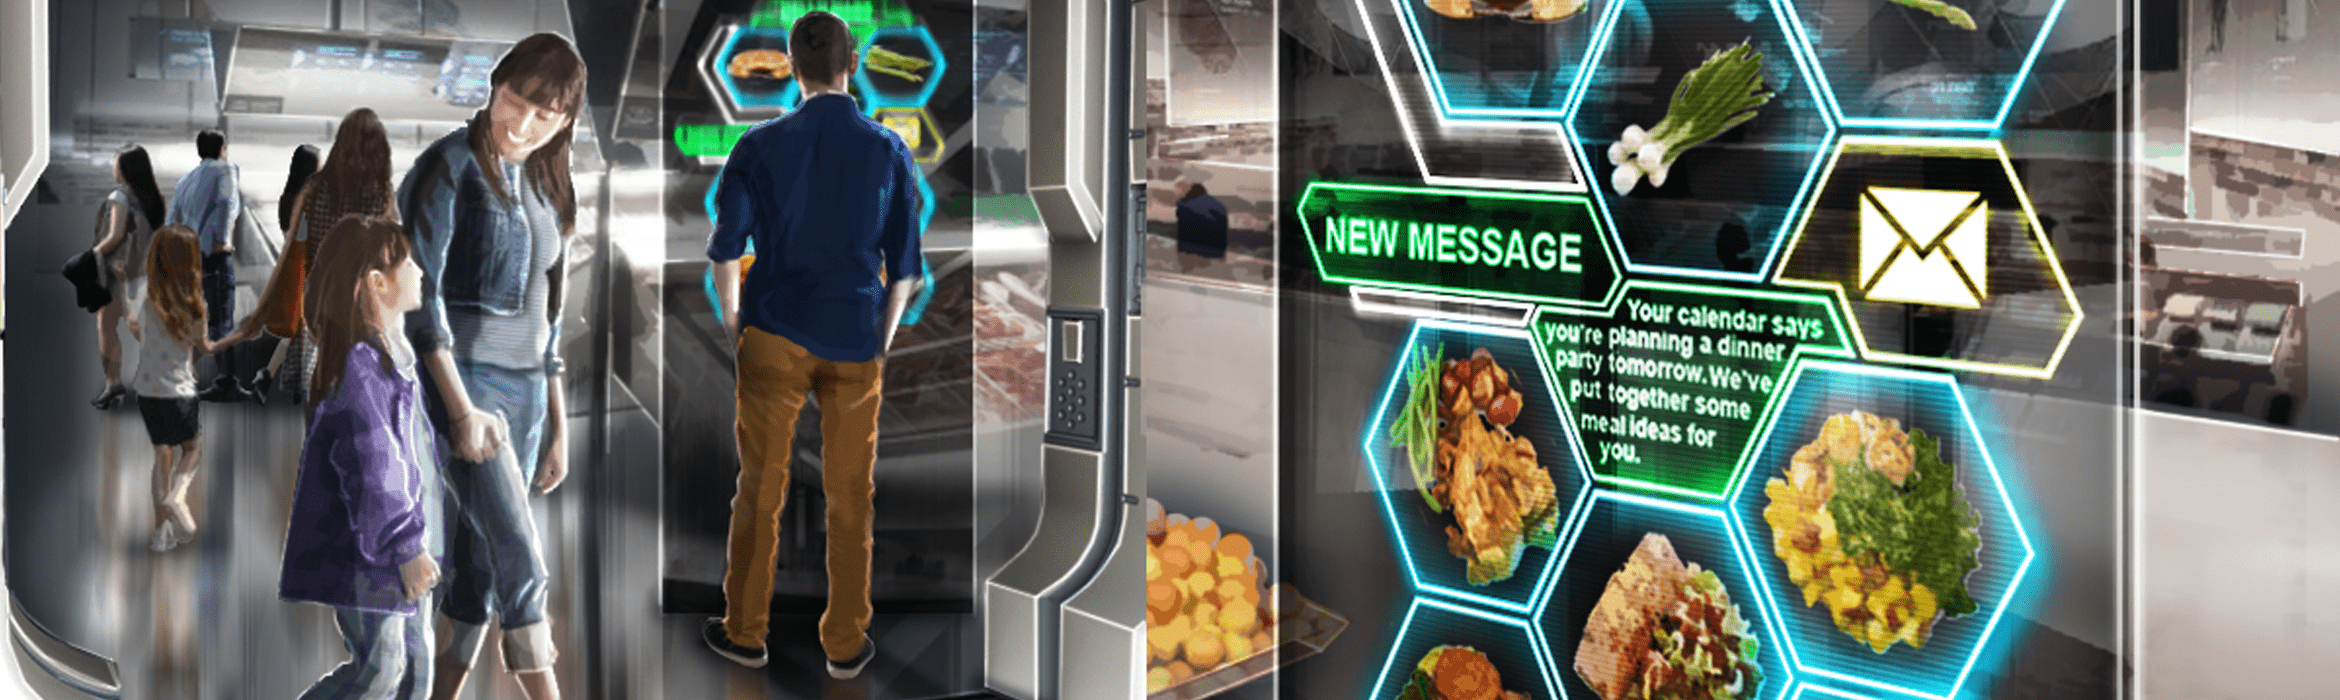 A customer receives personalised message on screen inside the high-tech retail store of the future.